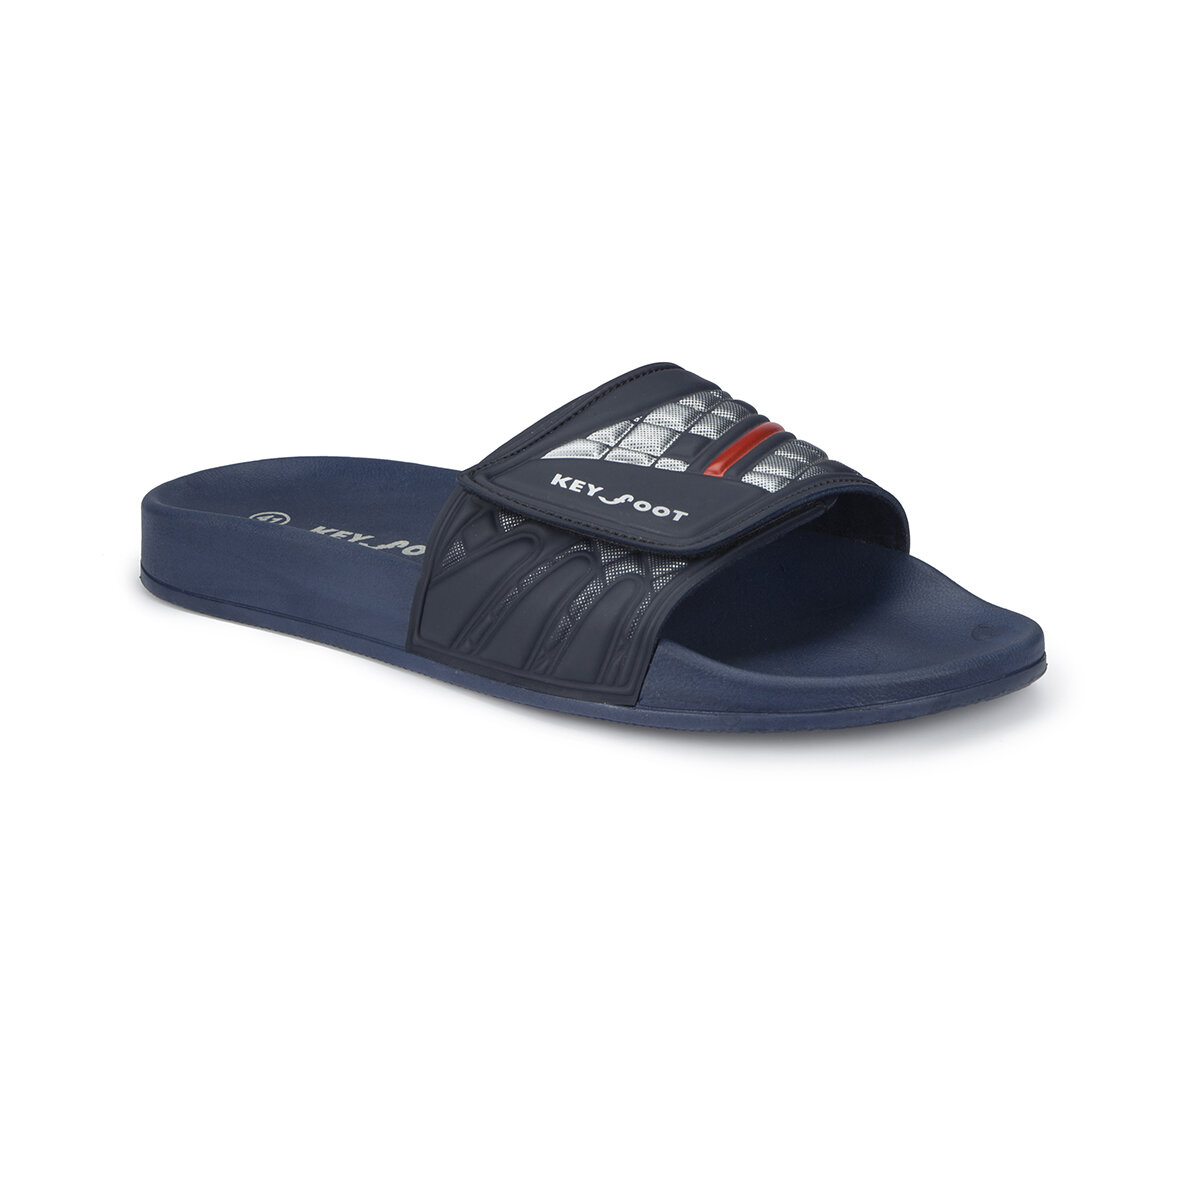 FLO 81. 452199.M Navy Blue Male Slippers Polaris